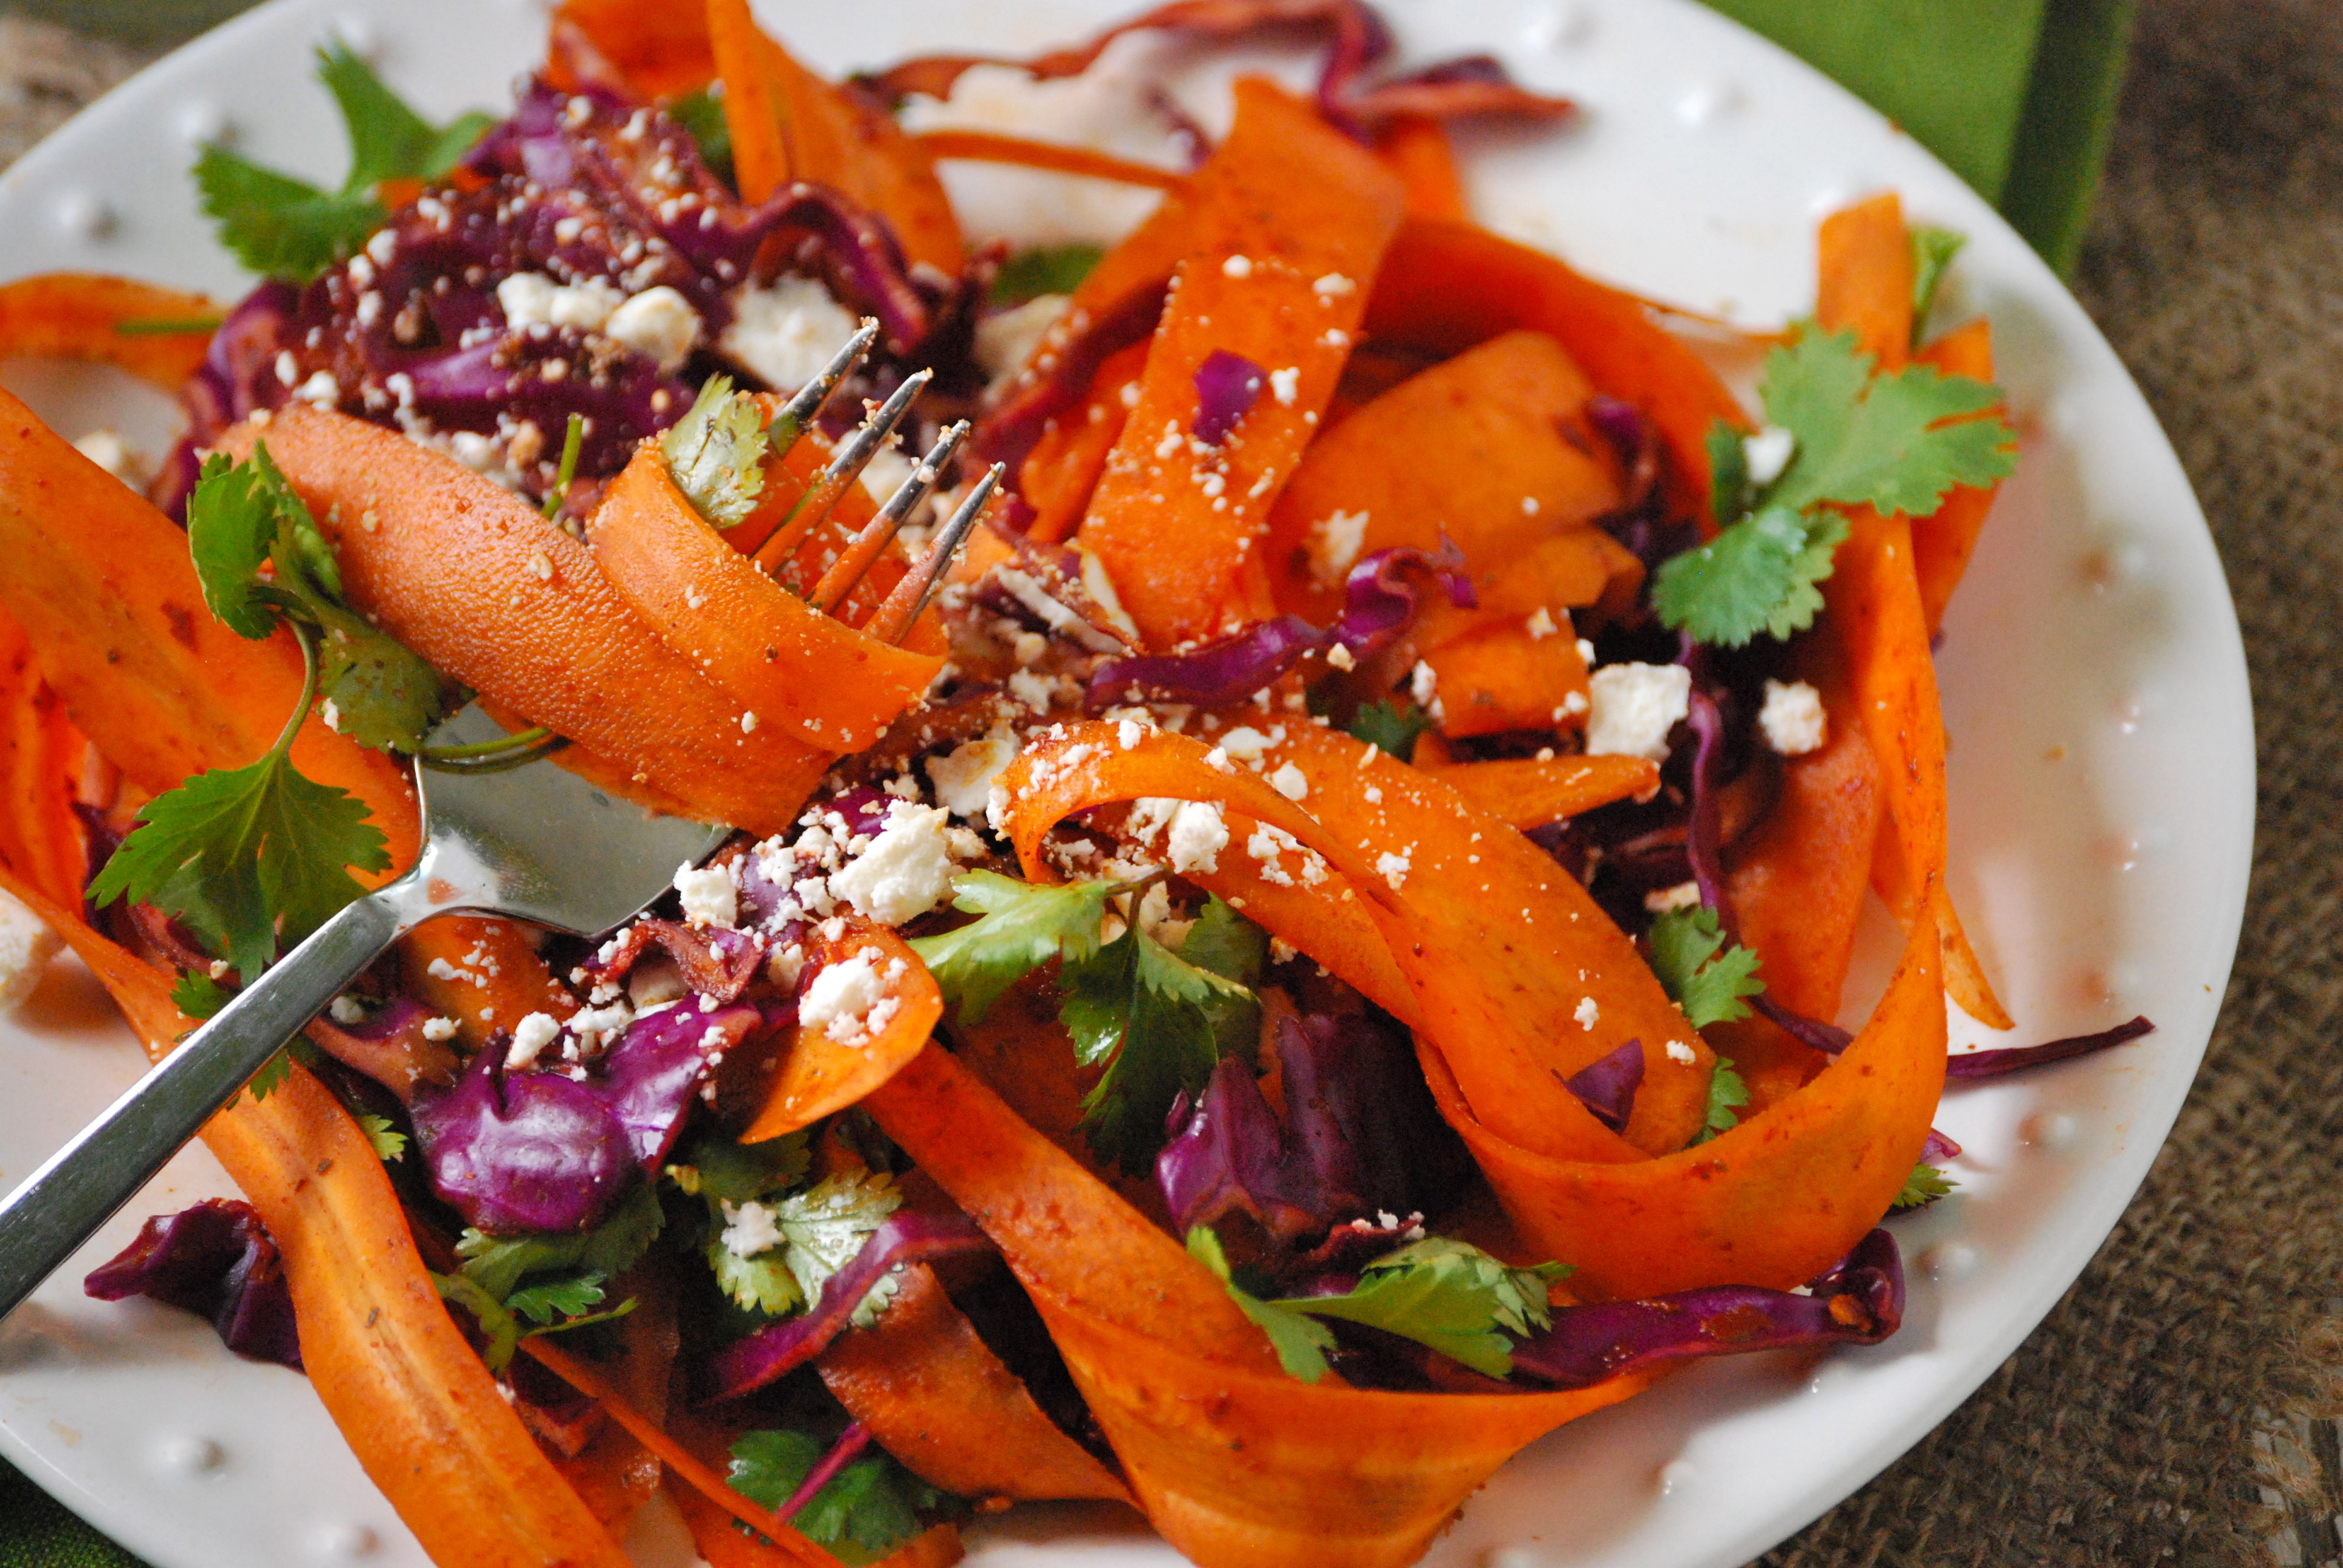 Carrot Salad Recipe  Simple Carrot Salad with Harissa and Cilantro